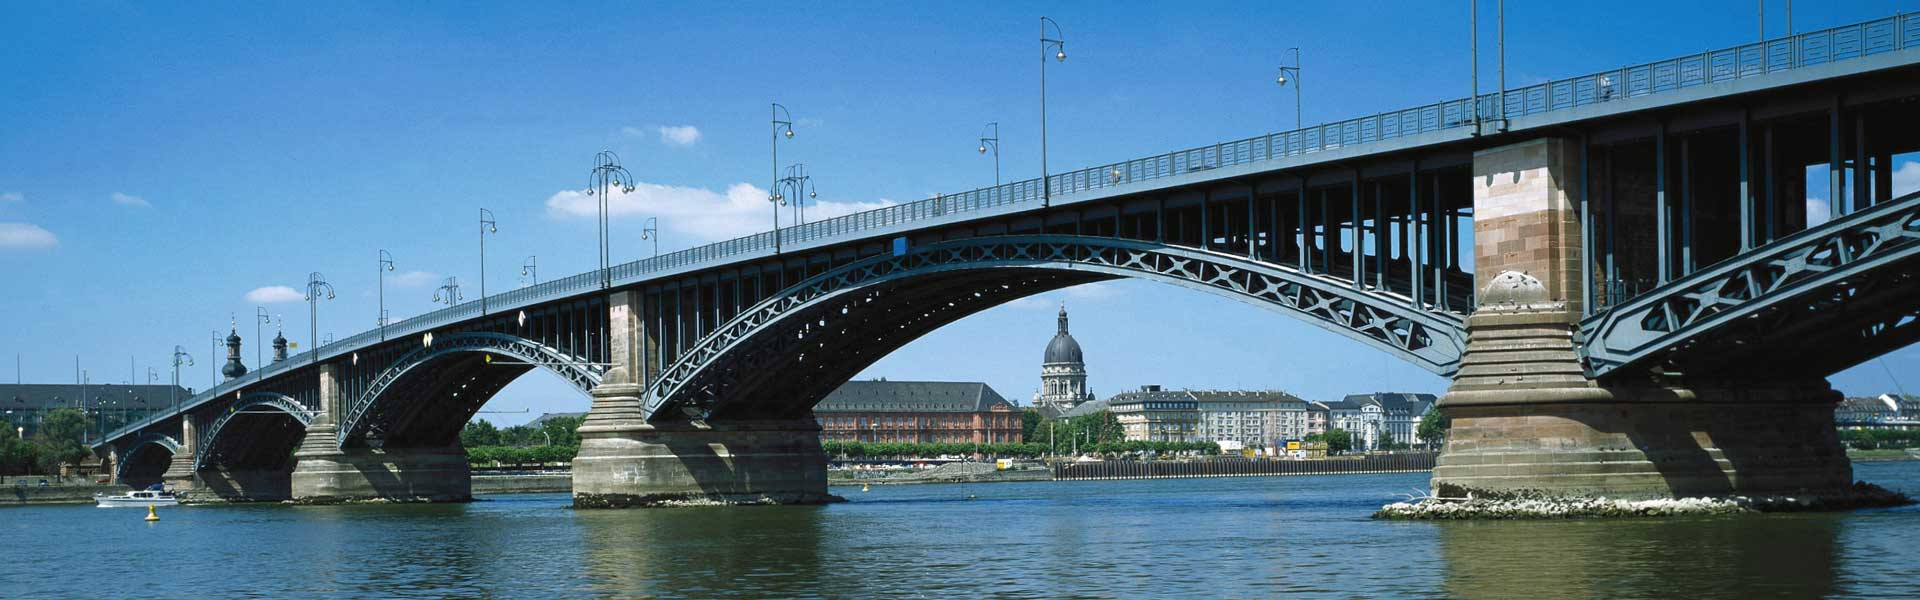 Theodor-Heuss-Bridge